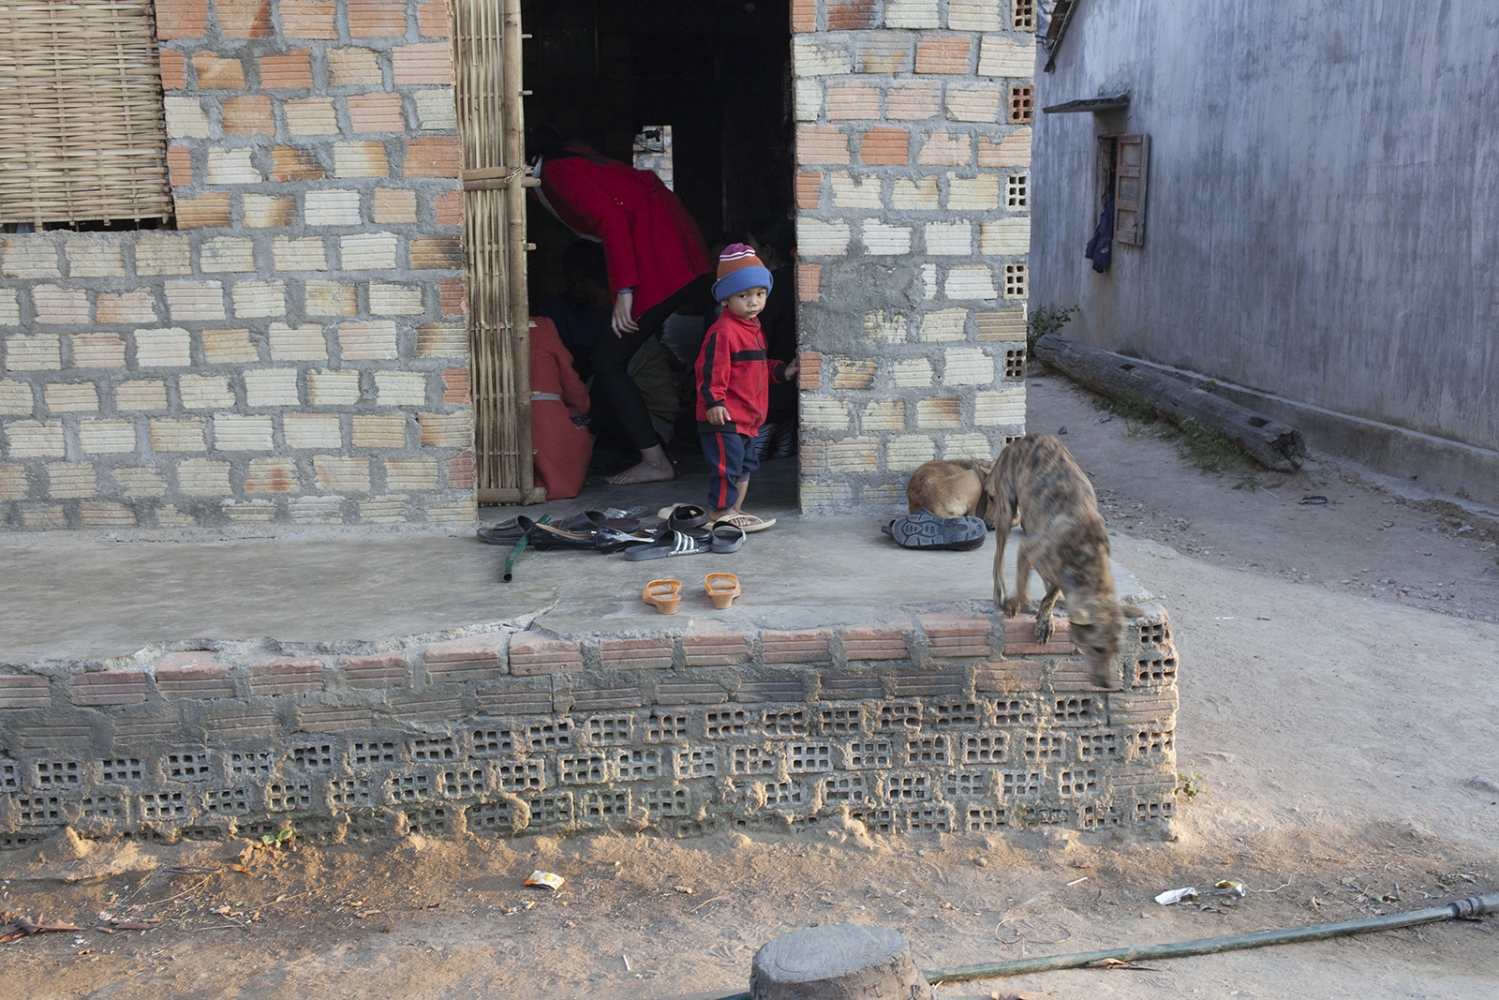 Child playing with a dog.